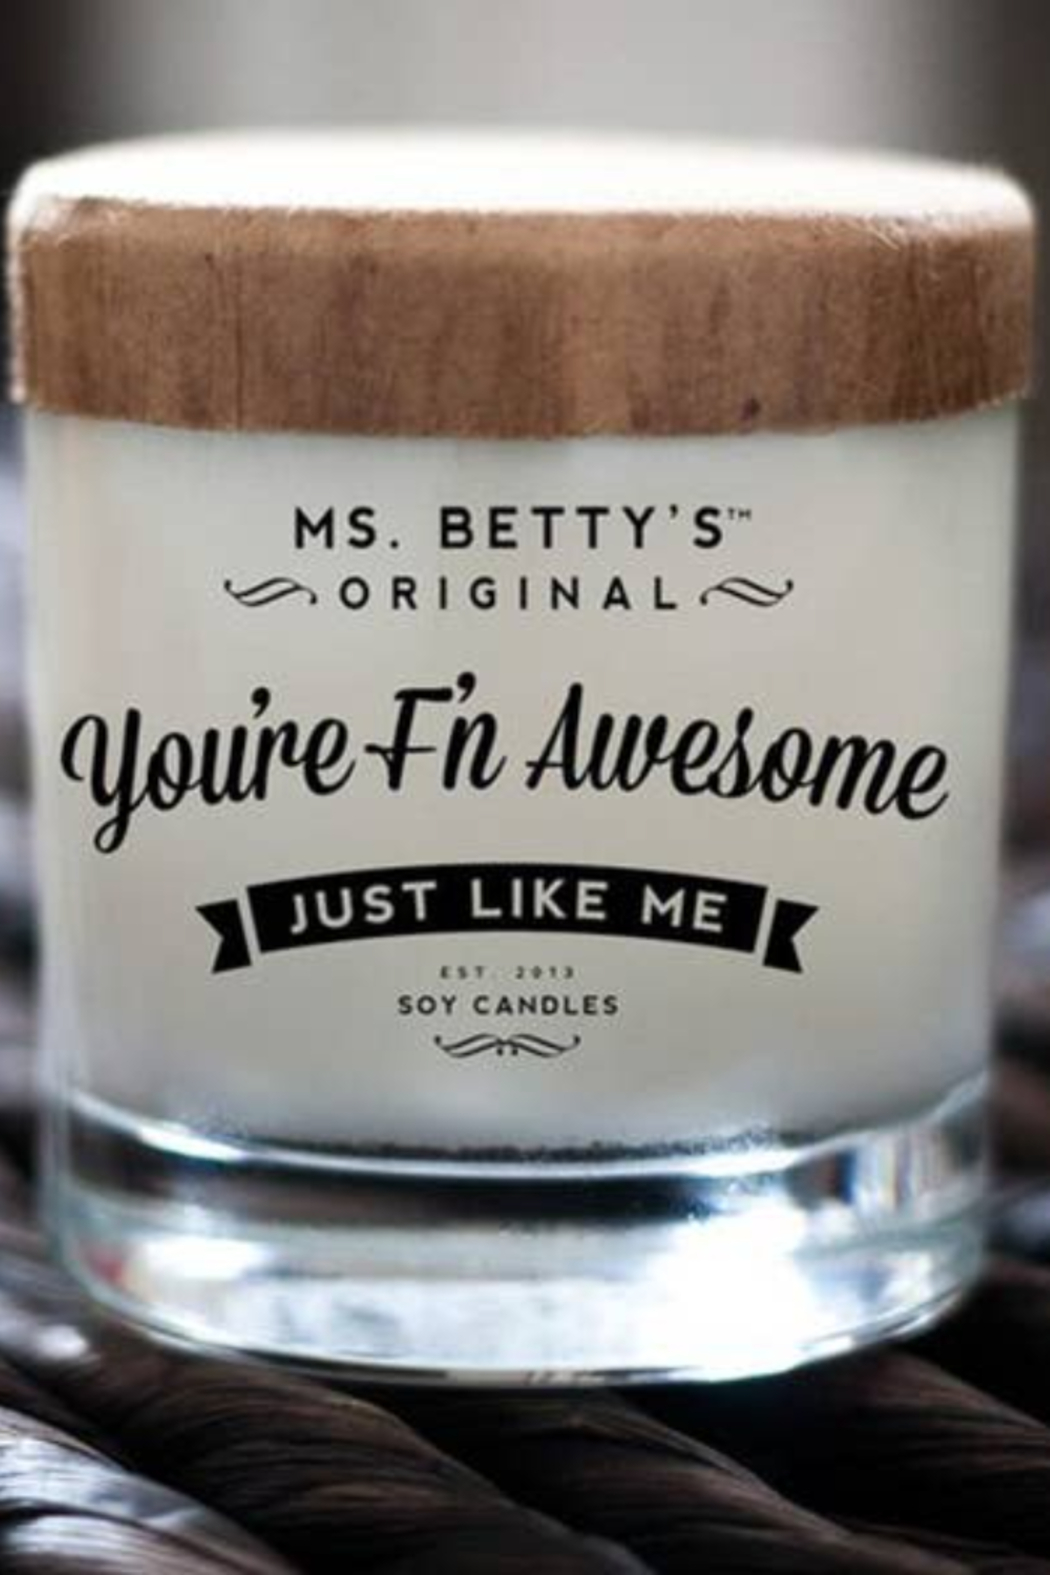 Ms. Betty's Original  Candle You're F'n Awesome-Just Like Me 75hrs. - Main Image